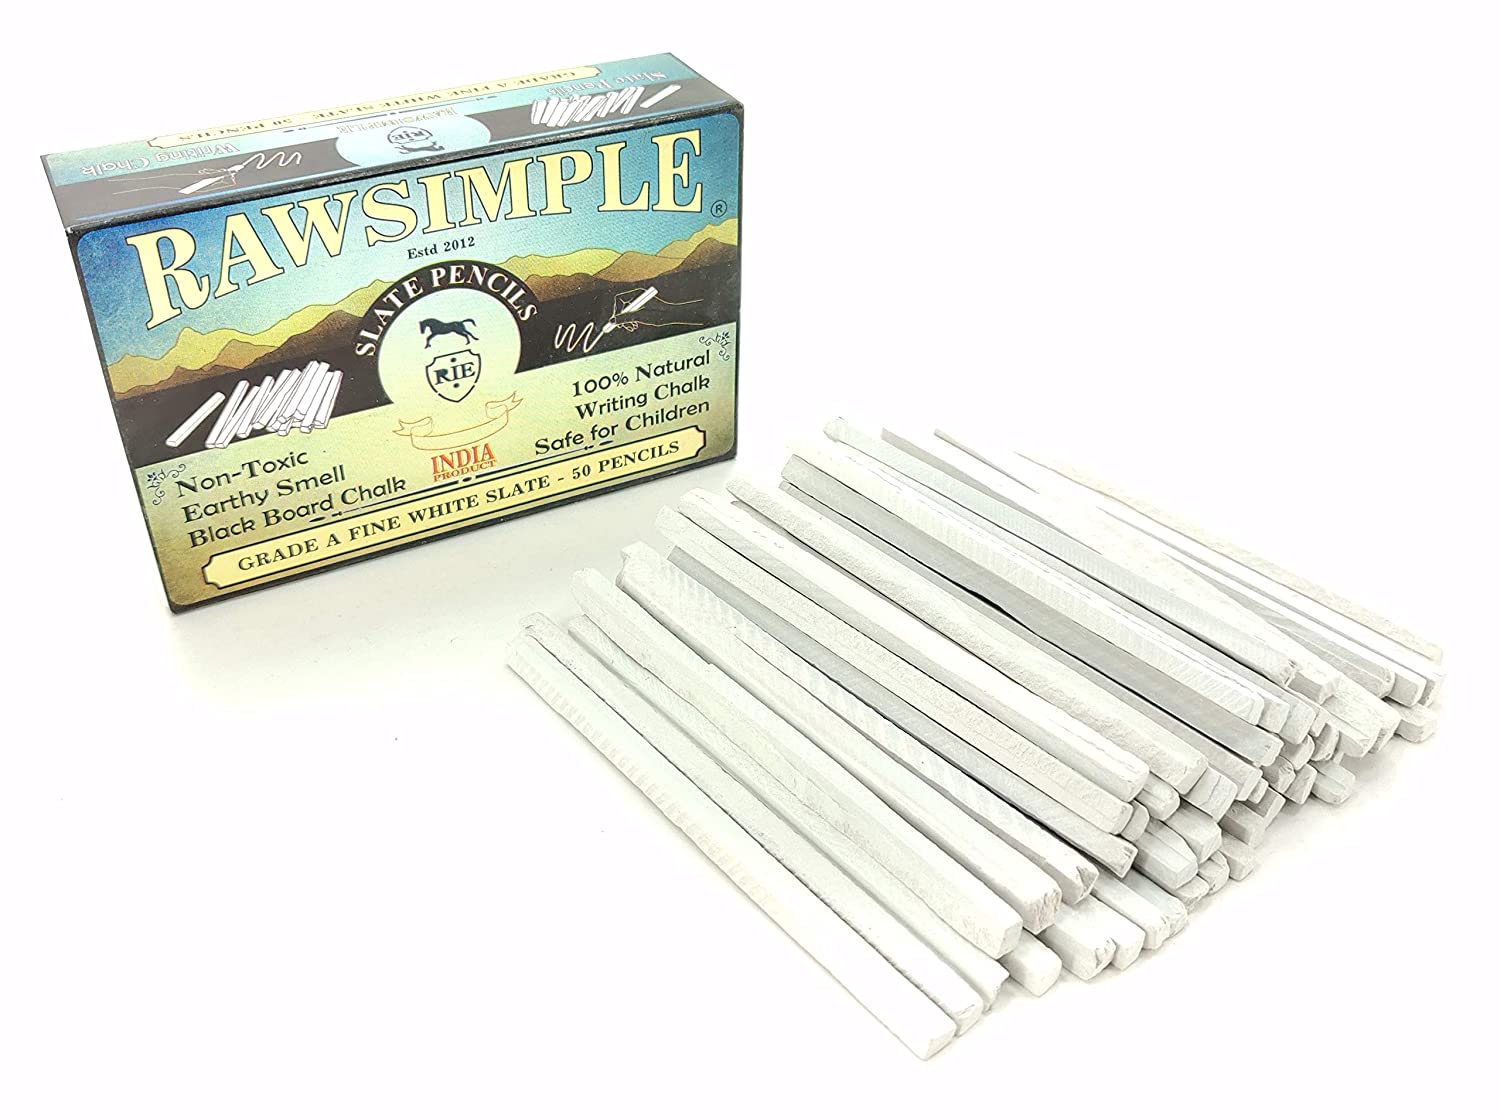 White Slate Pencils GRADE A FINE - Natural Lime Stone Chalk Pencils for Chalkboard, Fabric and Metal to Write, Sketch, Draw and Edible (Pack of 50) by ...